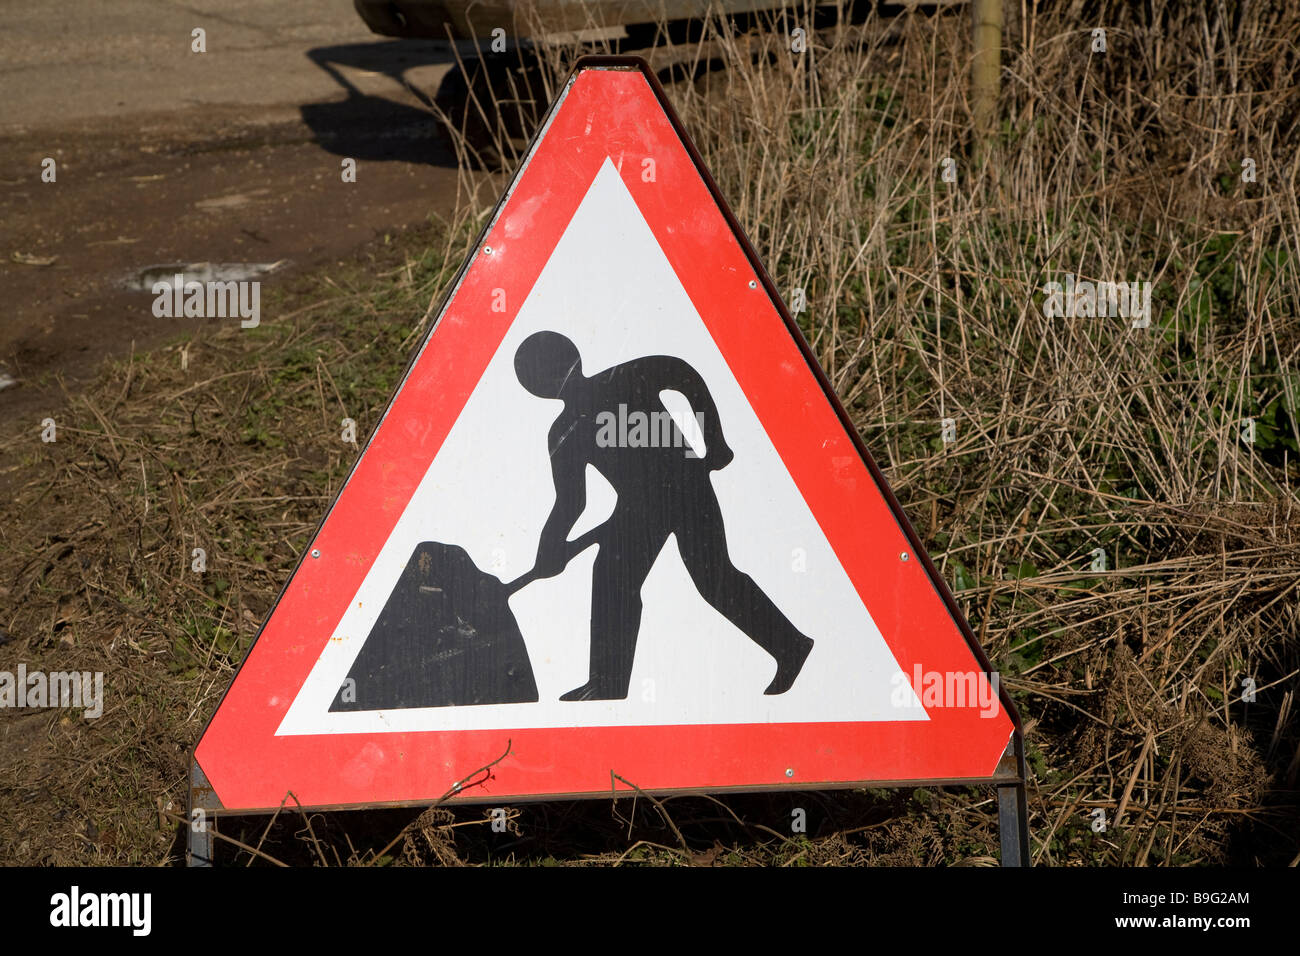 Men at work red triangle road sign - Stock Image